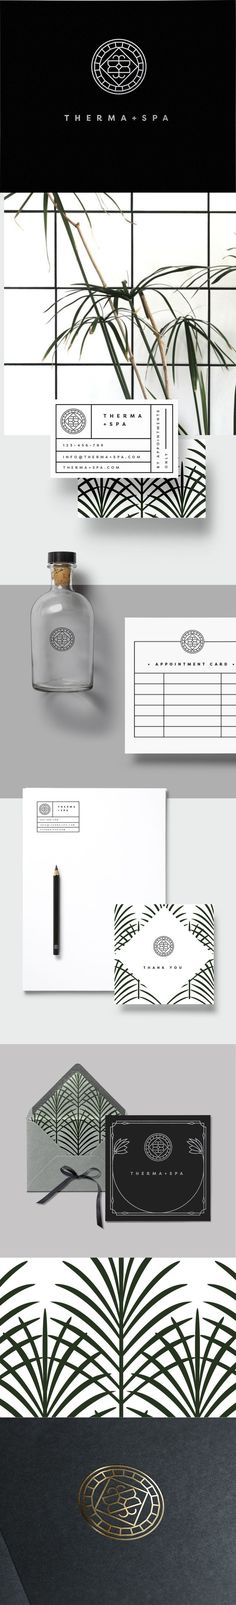 Minimalist + Edgy Branding + logo- available. Perfect for a spa, beauty or hair salons- http://Loolaadesigns.com